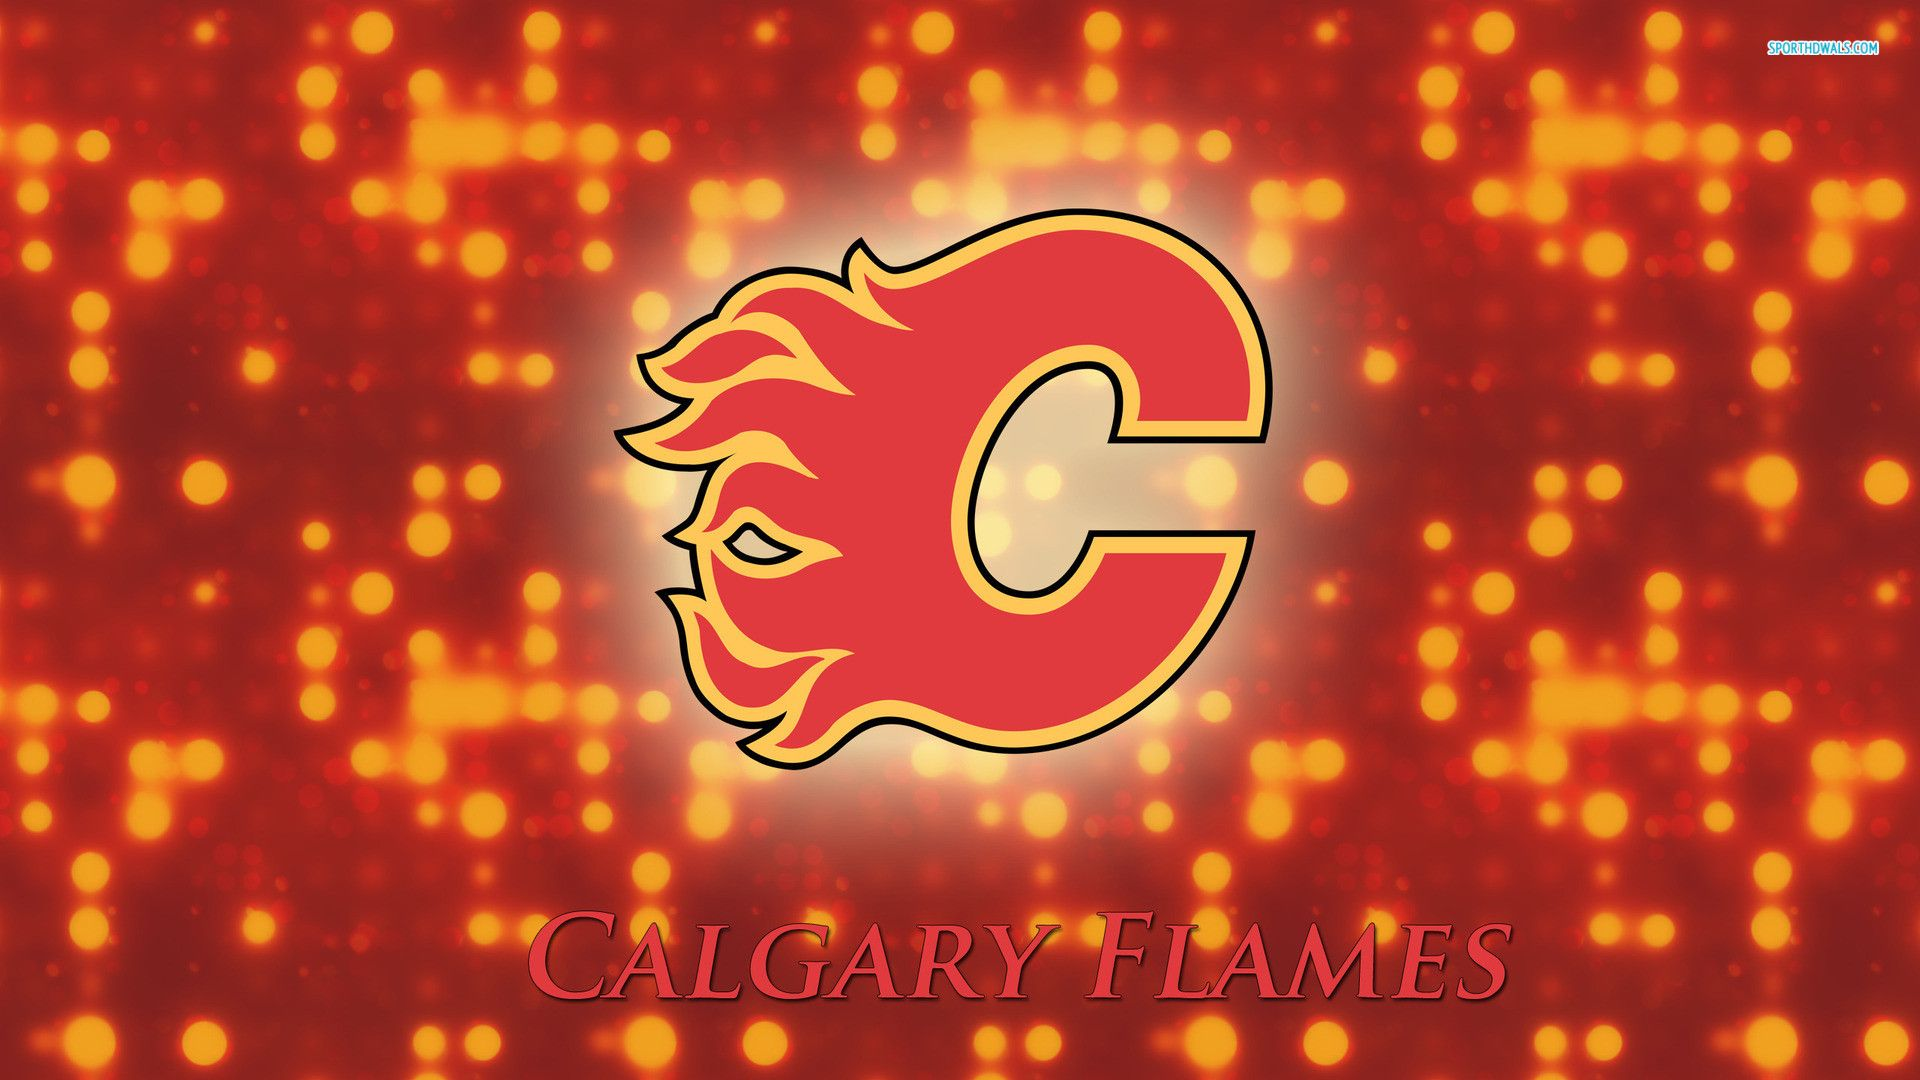 Calgary Flames wallpaper 1920x1080